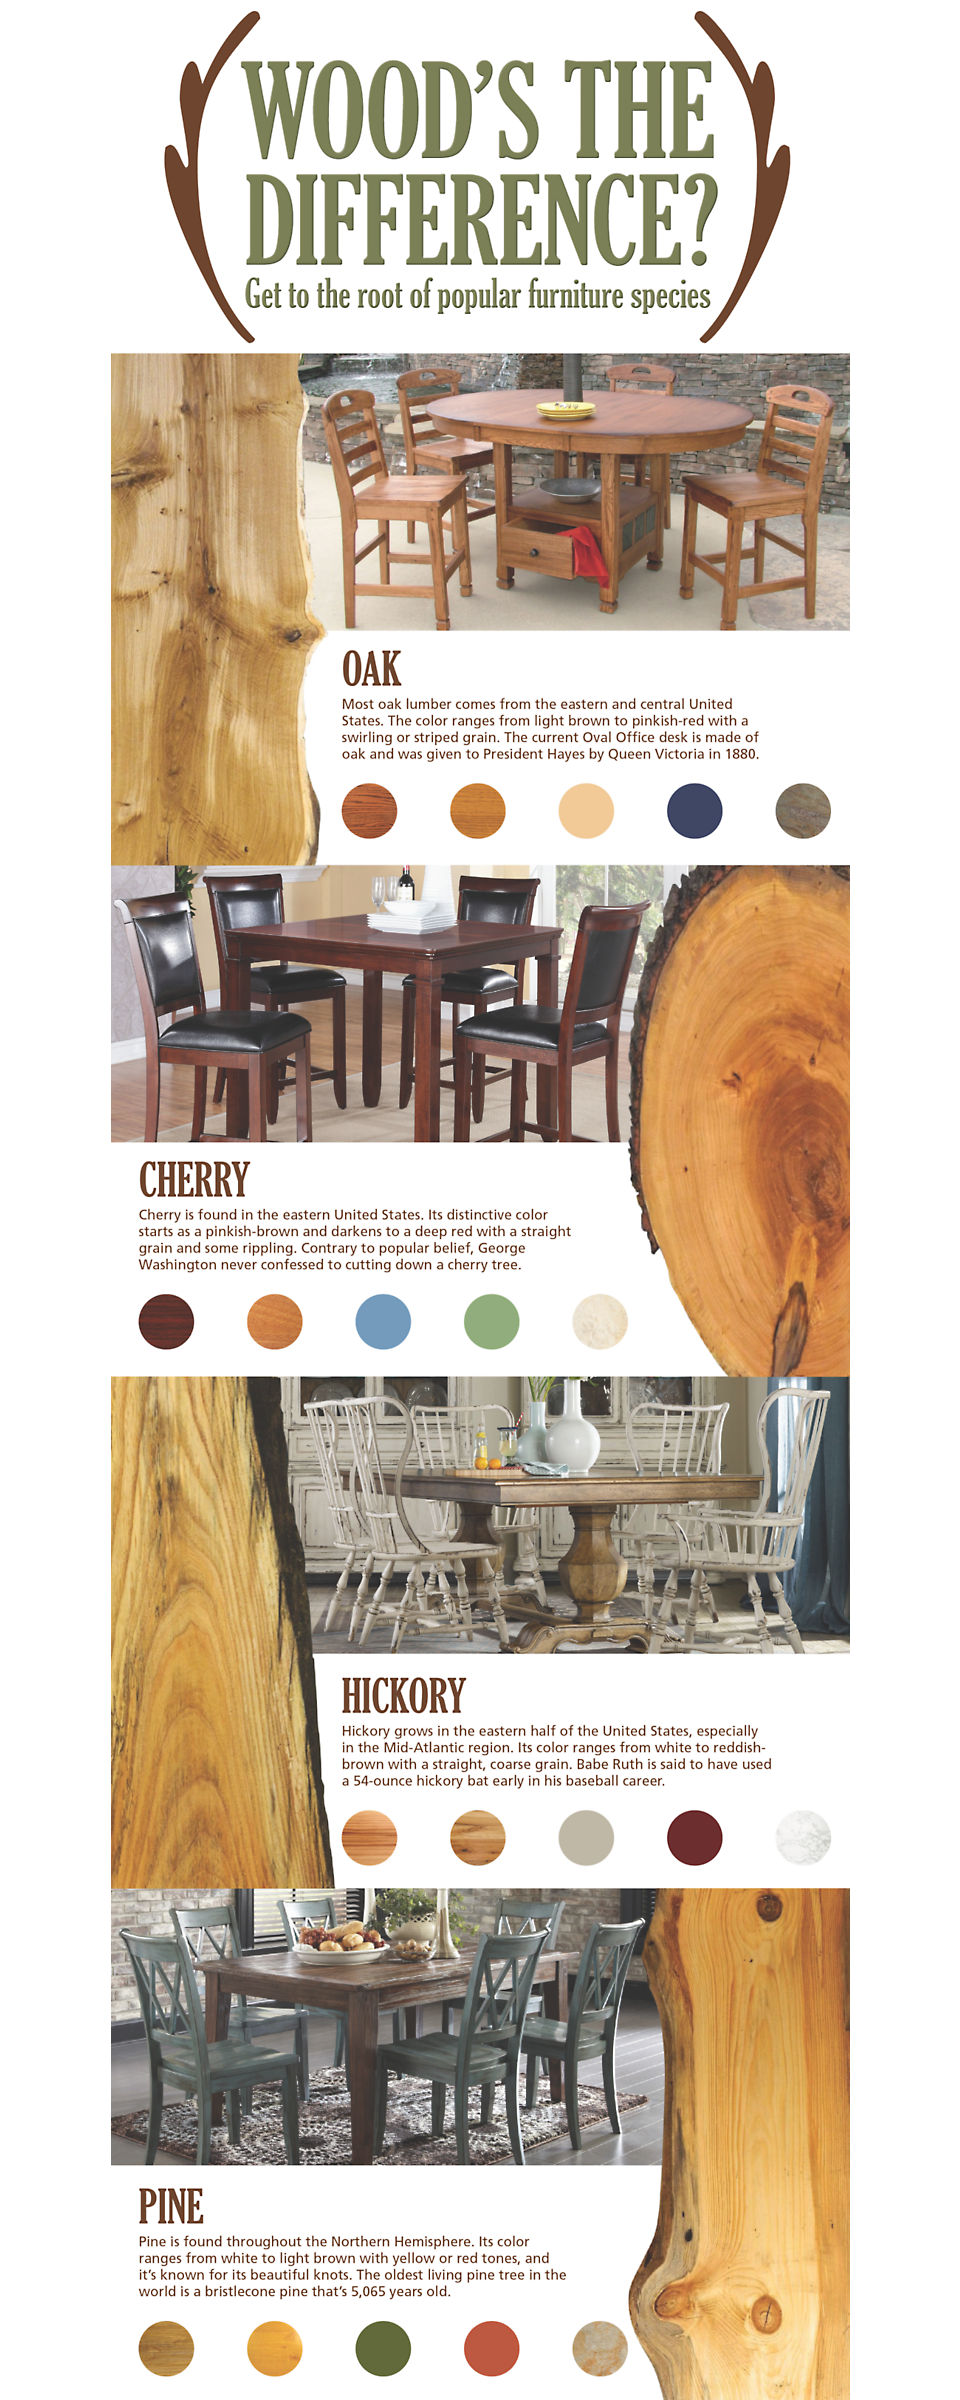 Oak, cherry, hickory and pine are popular wood species used in furniture production.